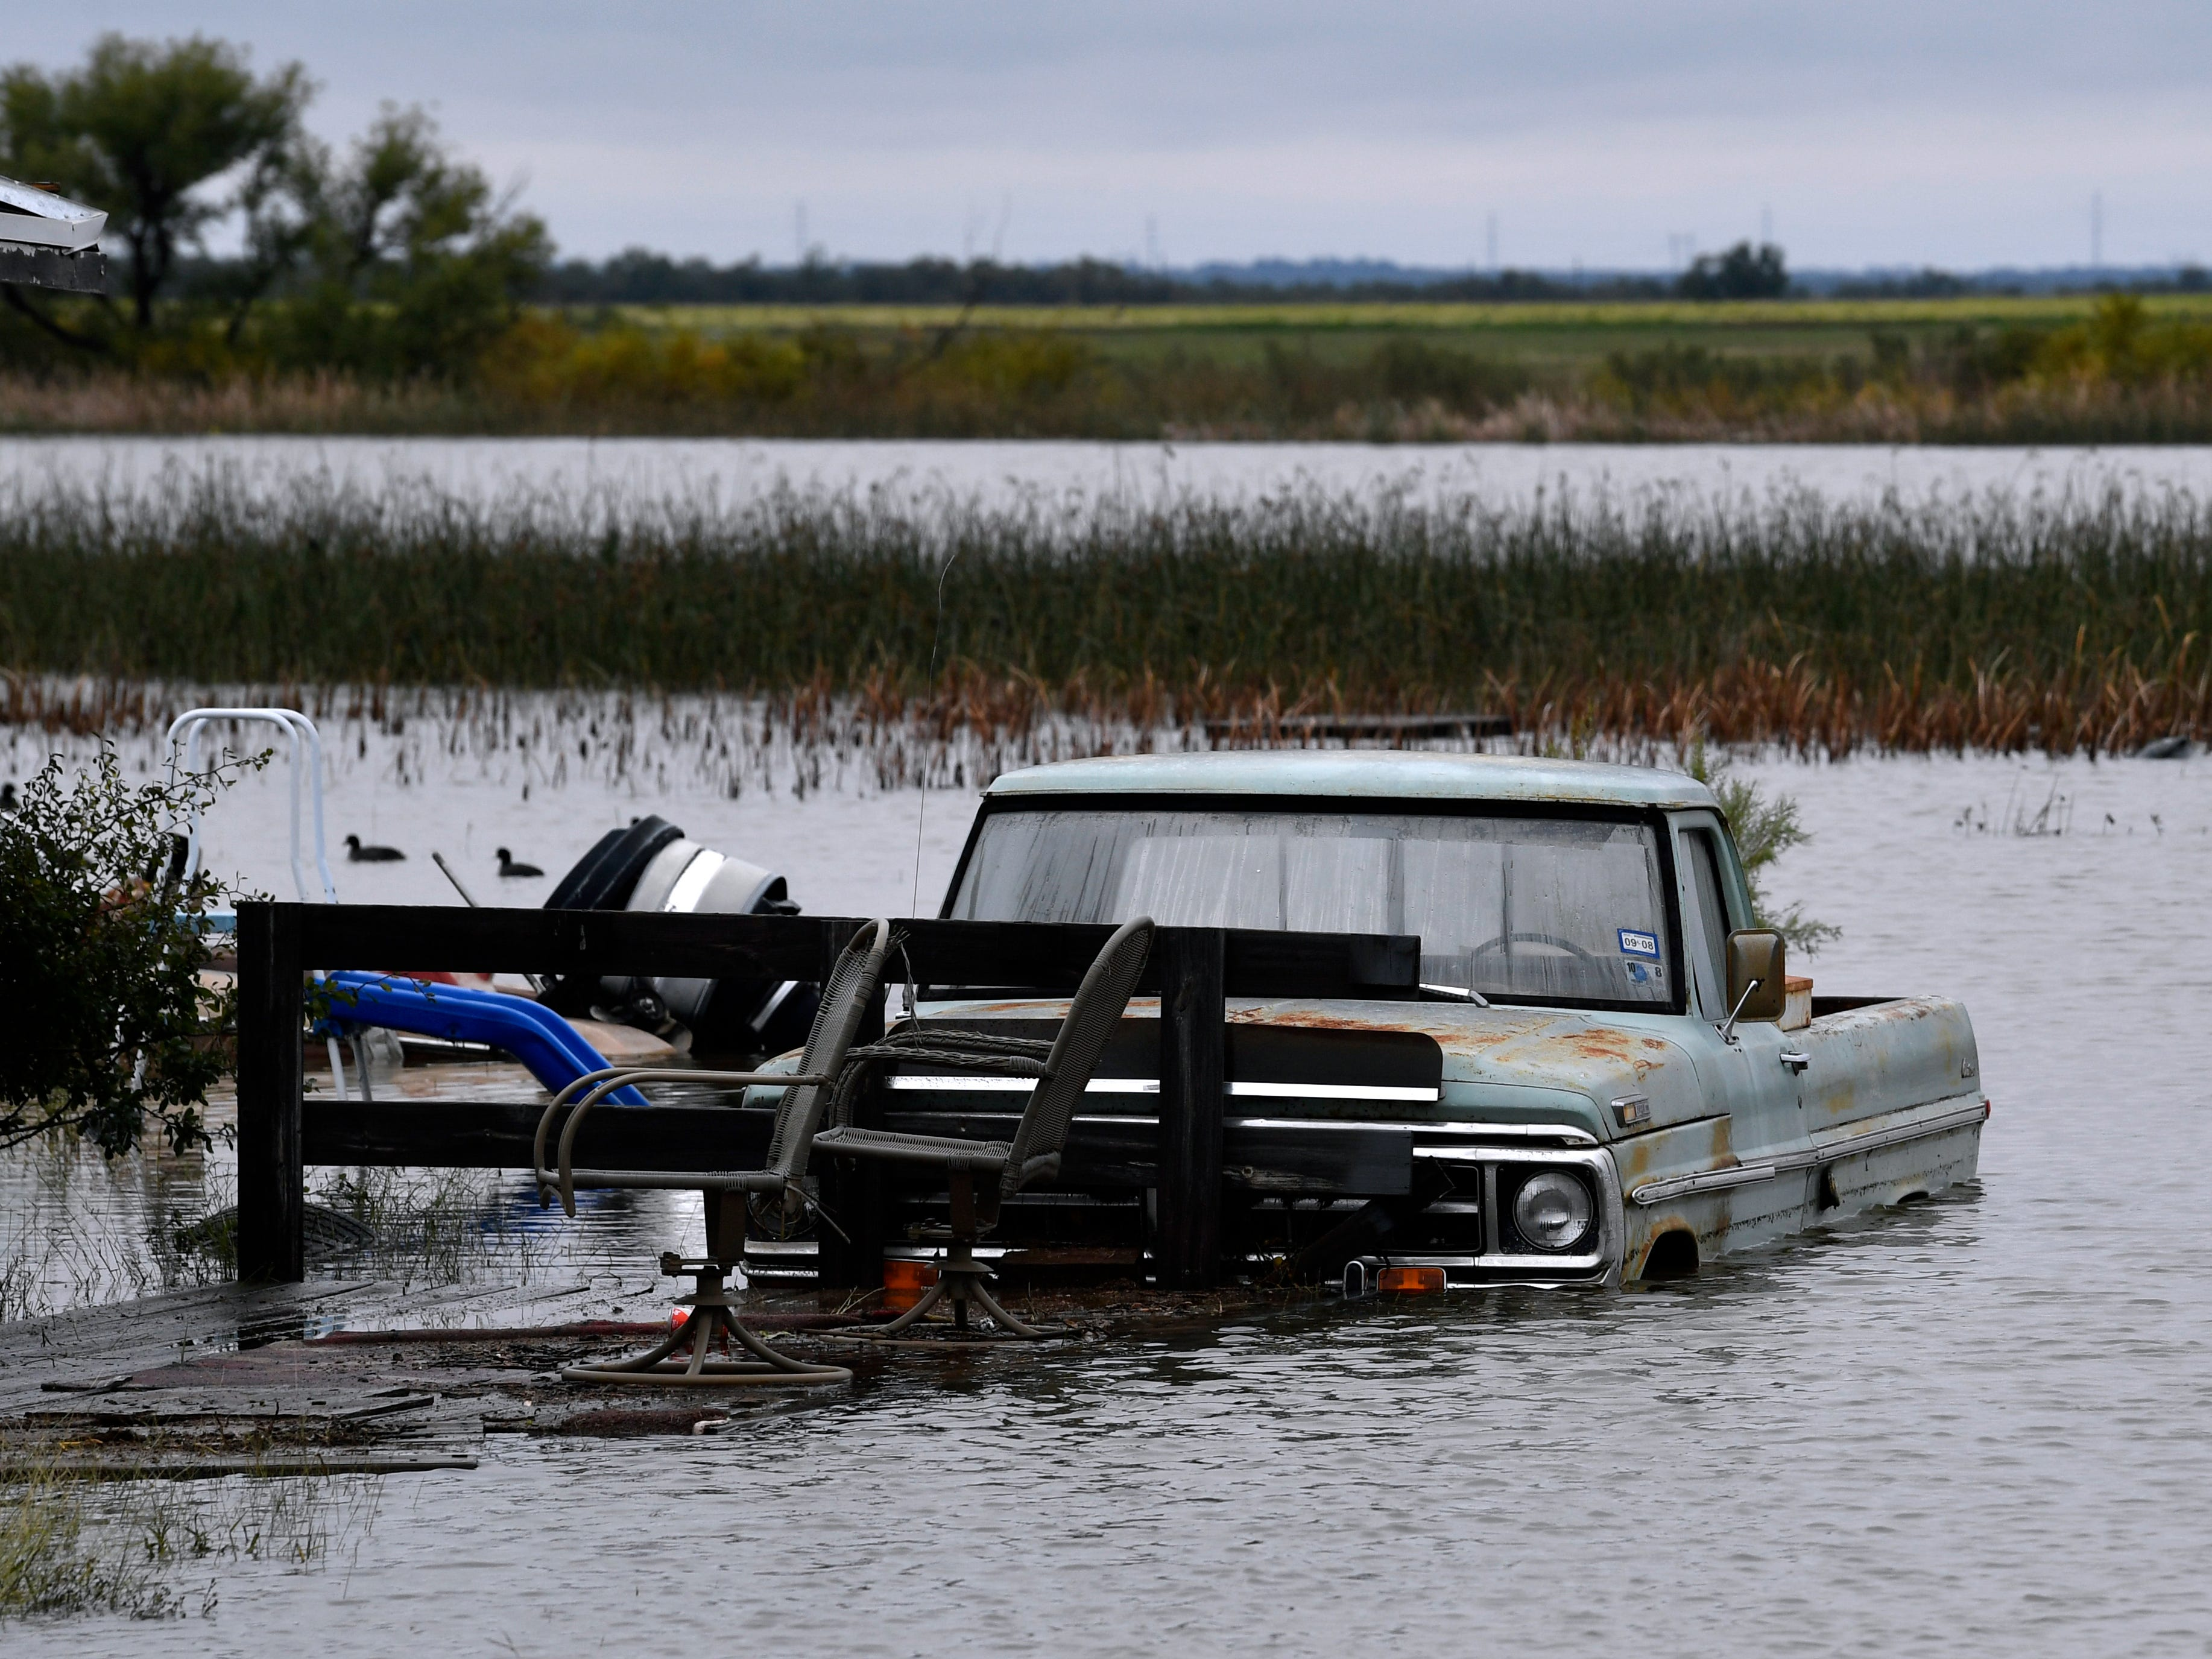 A pickup is surrounded by floodwaters Thursday Oct. 18, 2018 at Lake Stamford. Heavy rains have filled the lake to overflowing, flooding homes along the shore for the first time in several years.